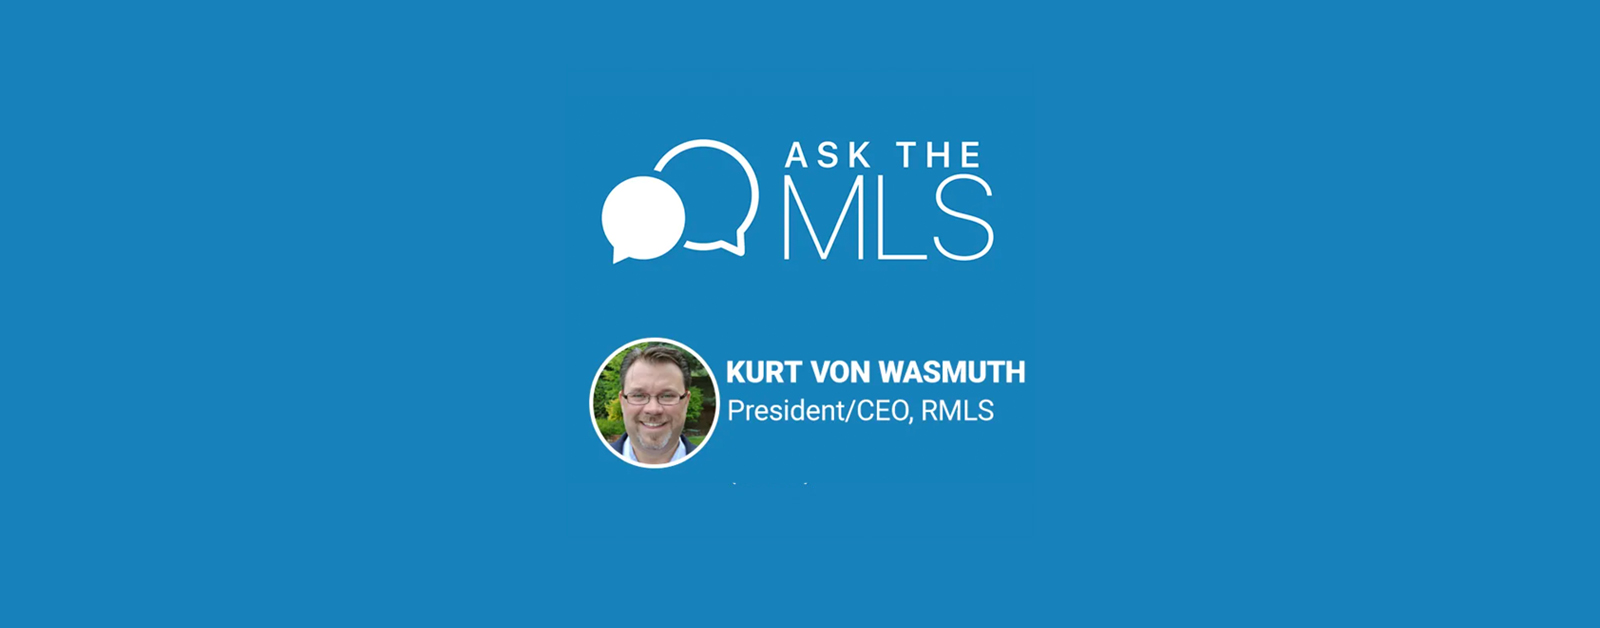 Ask the MLS Kurt Von Wasmuth